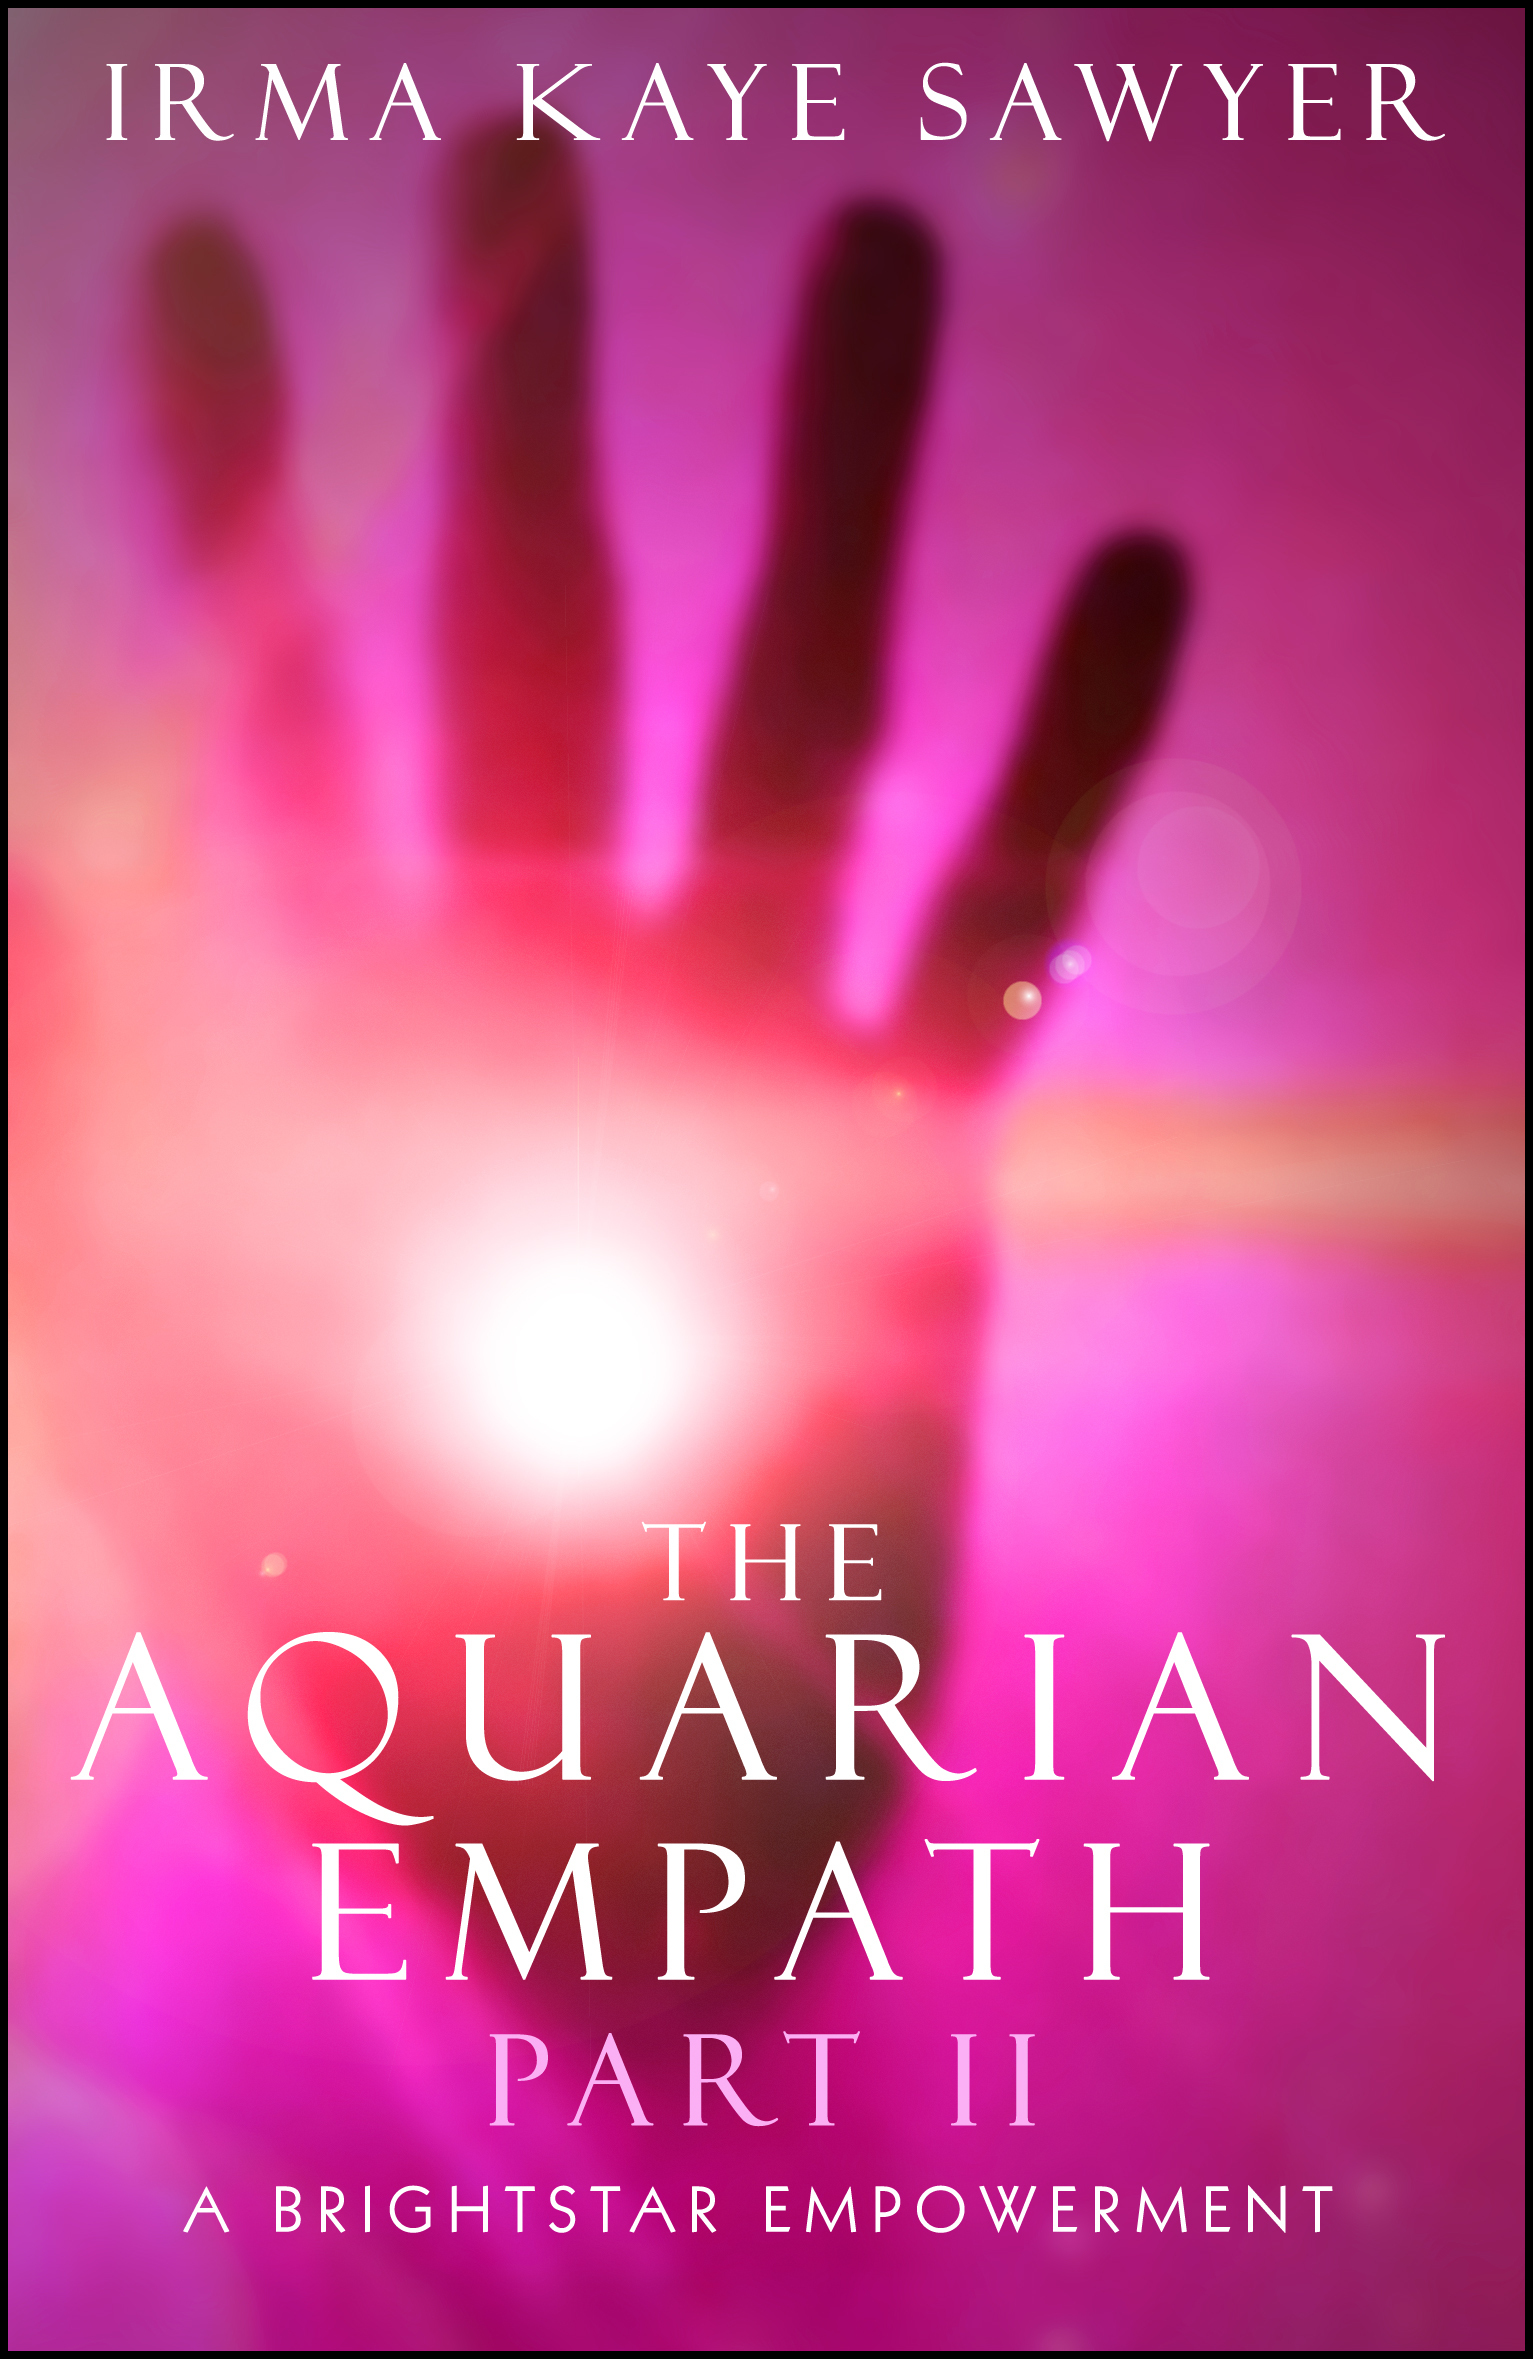 The Aquarian Empath, Part II: A BrightStar Empowerment  by  Irma Kaye Sawyer